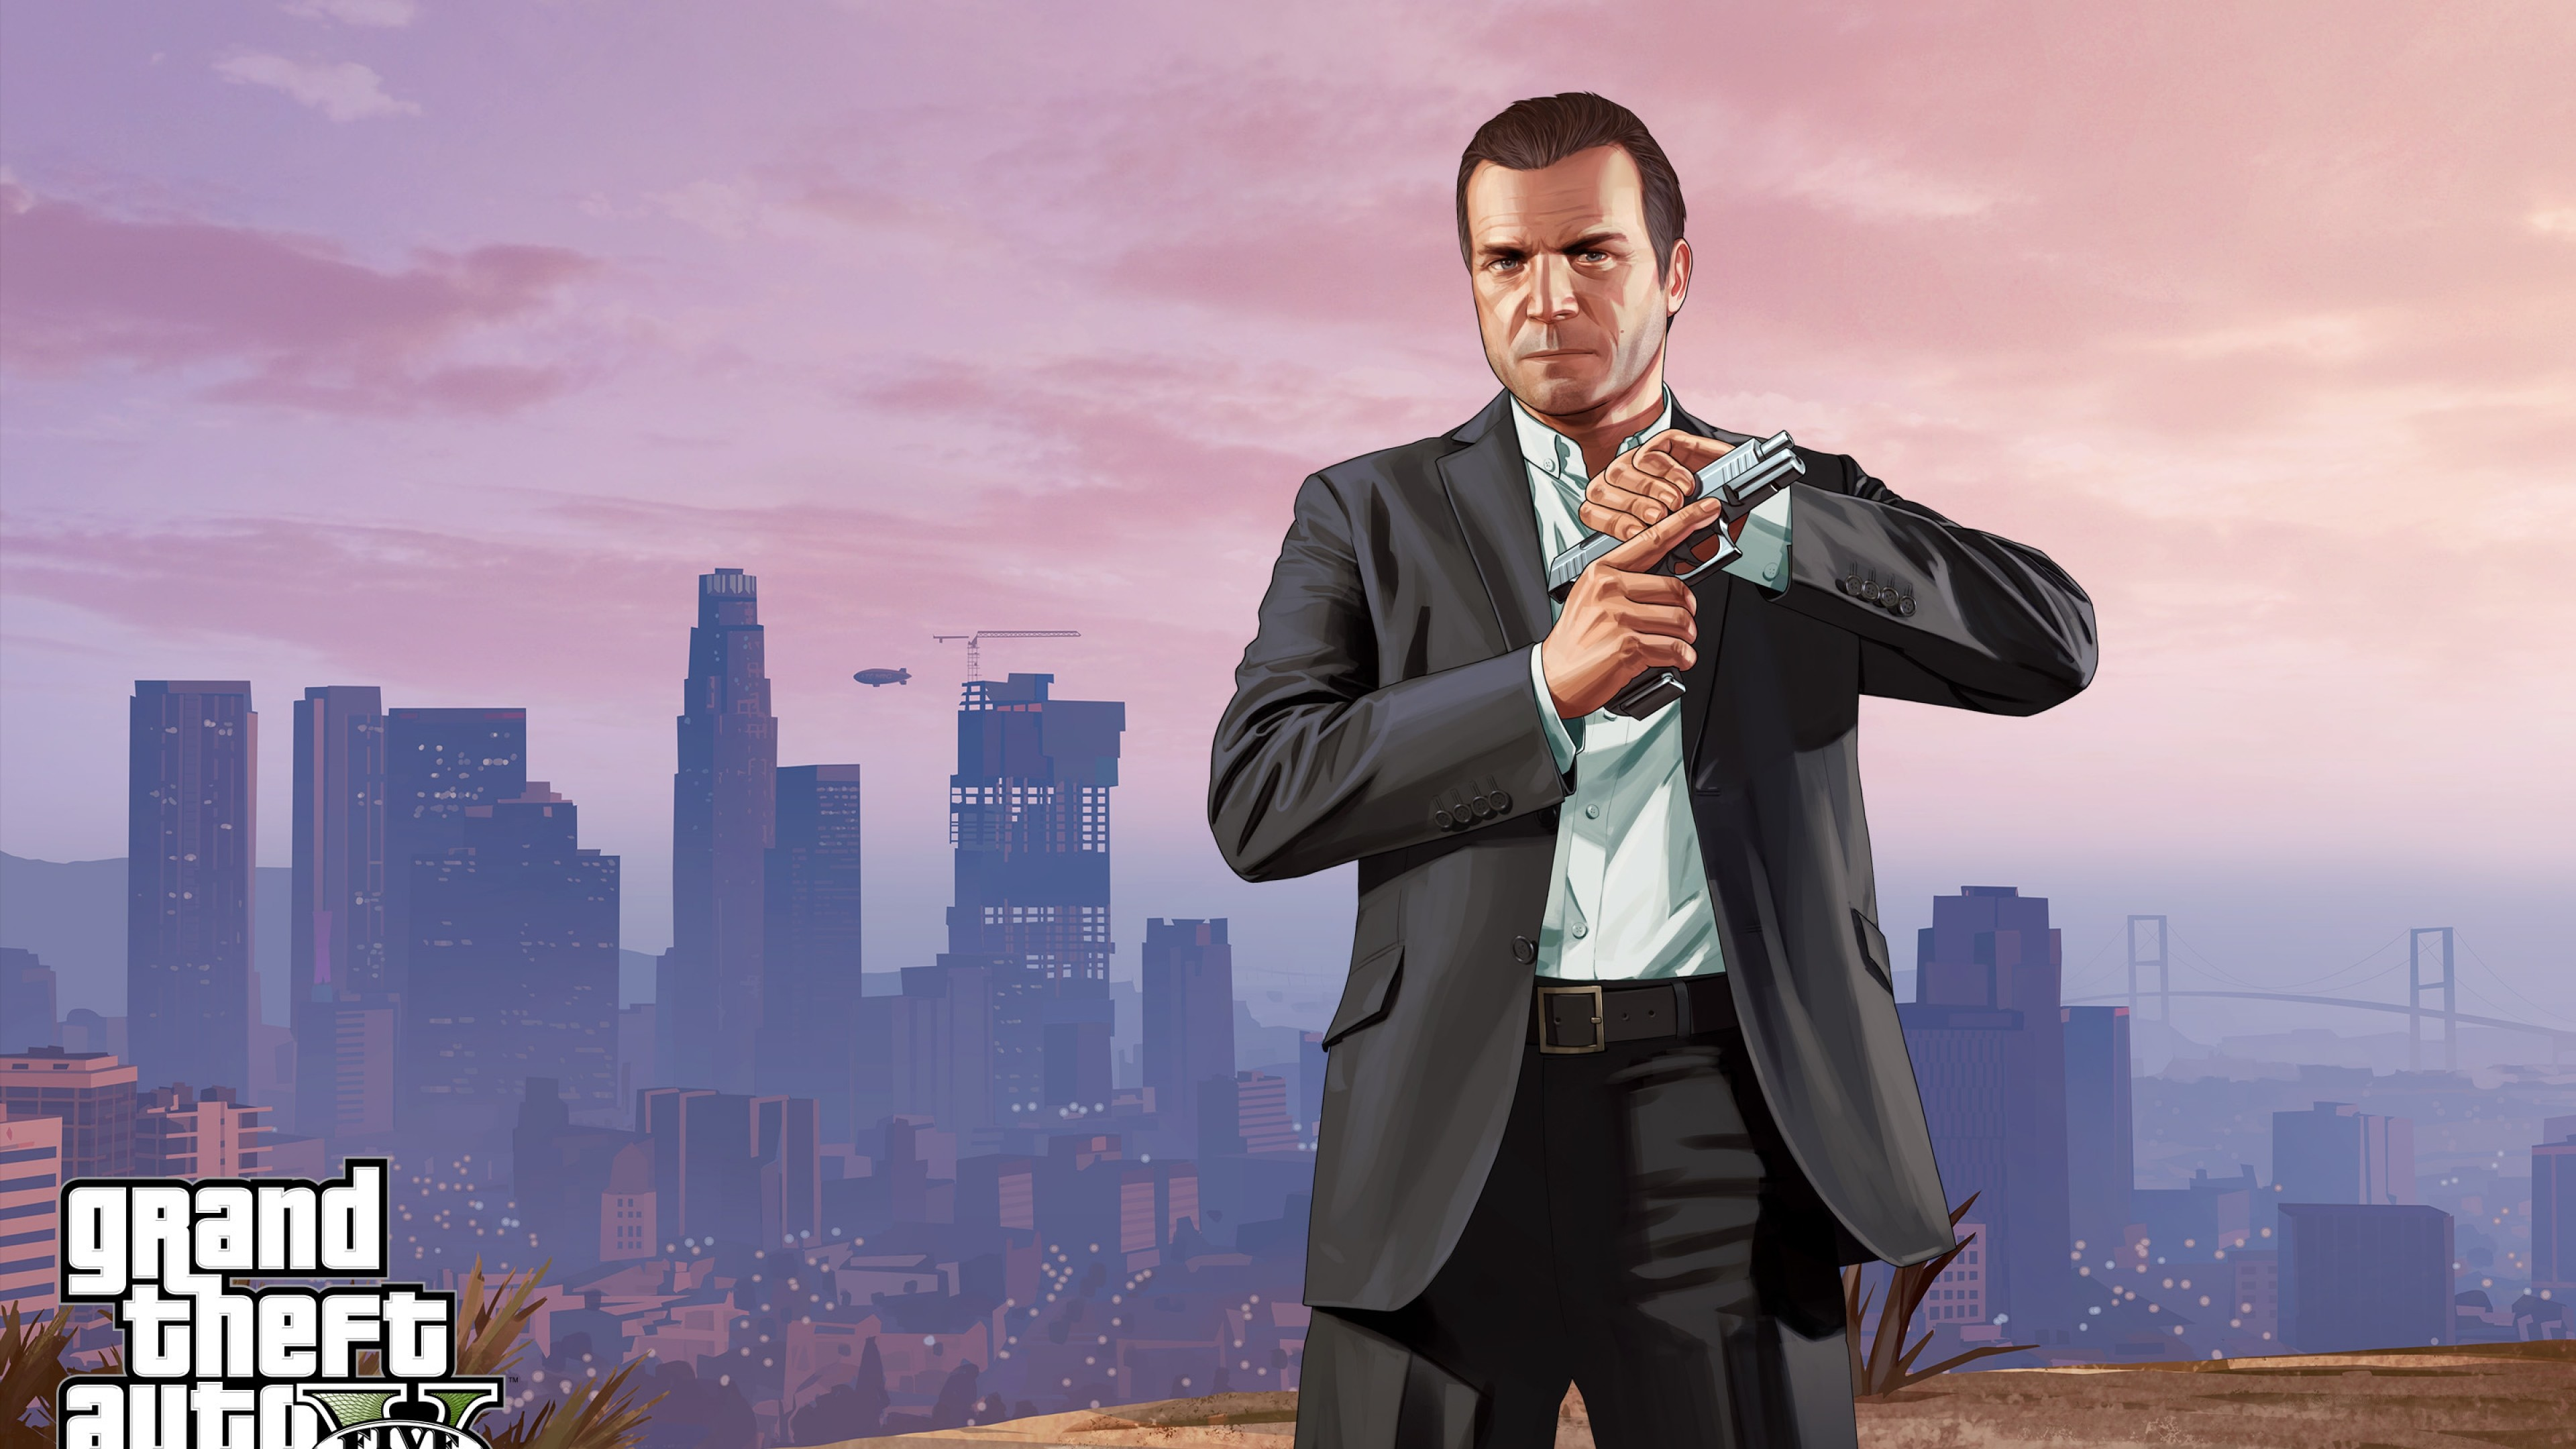 Gta V 4k Wallpaper 58 Images